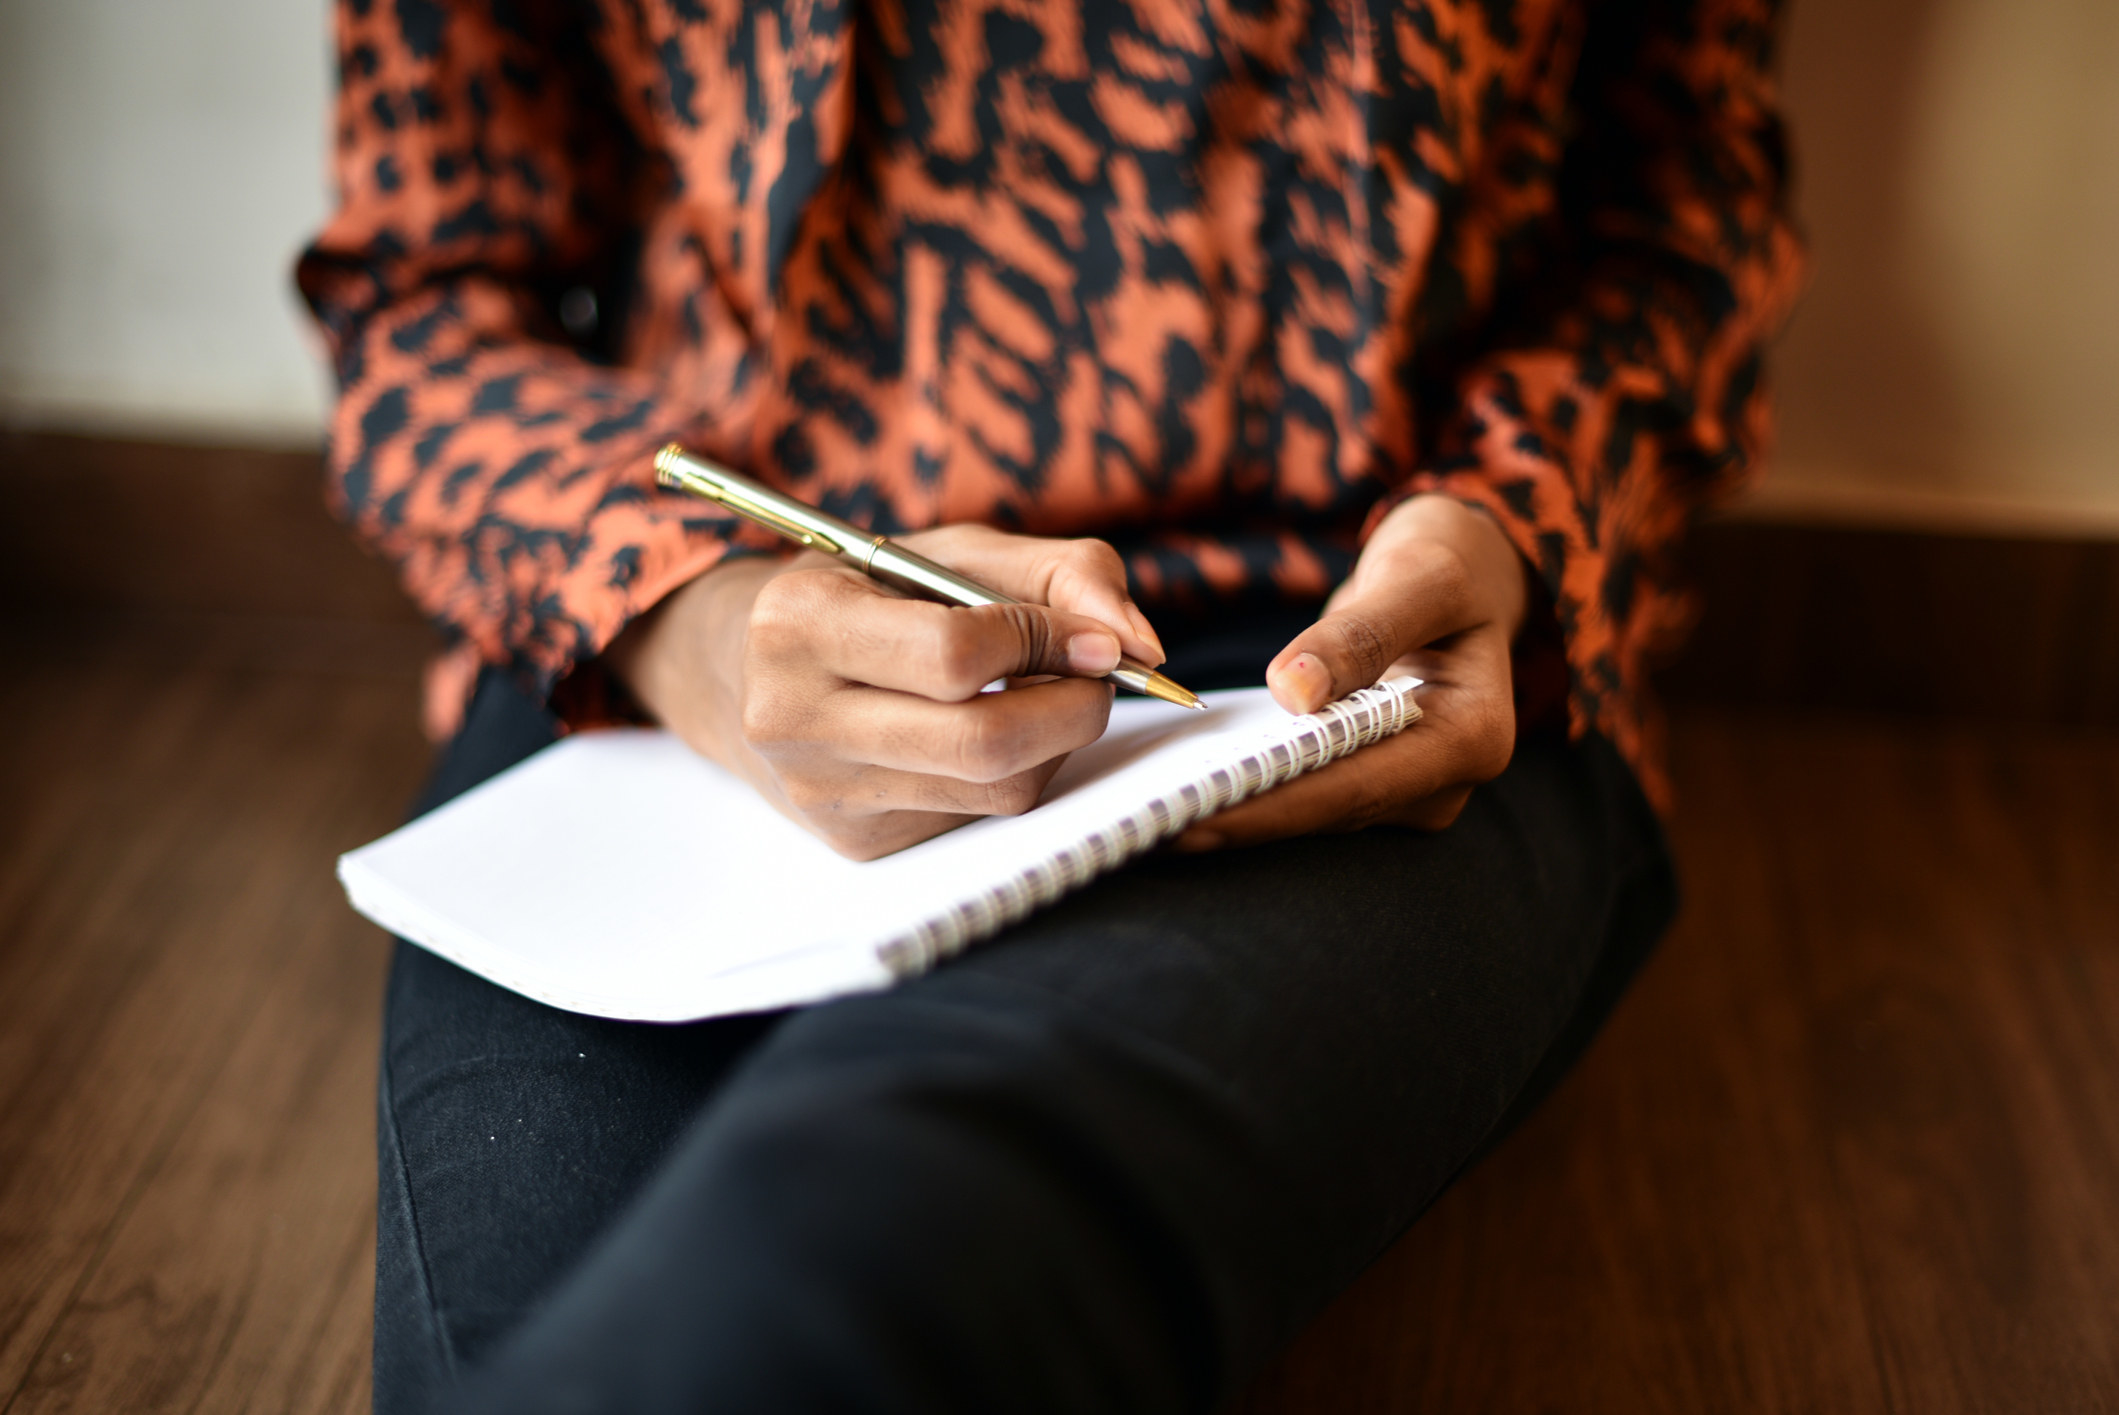 A woman sitting on the floor journaling.